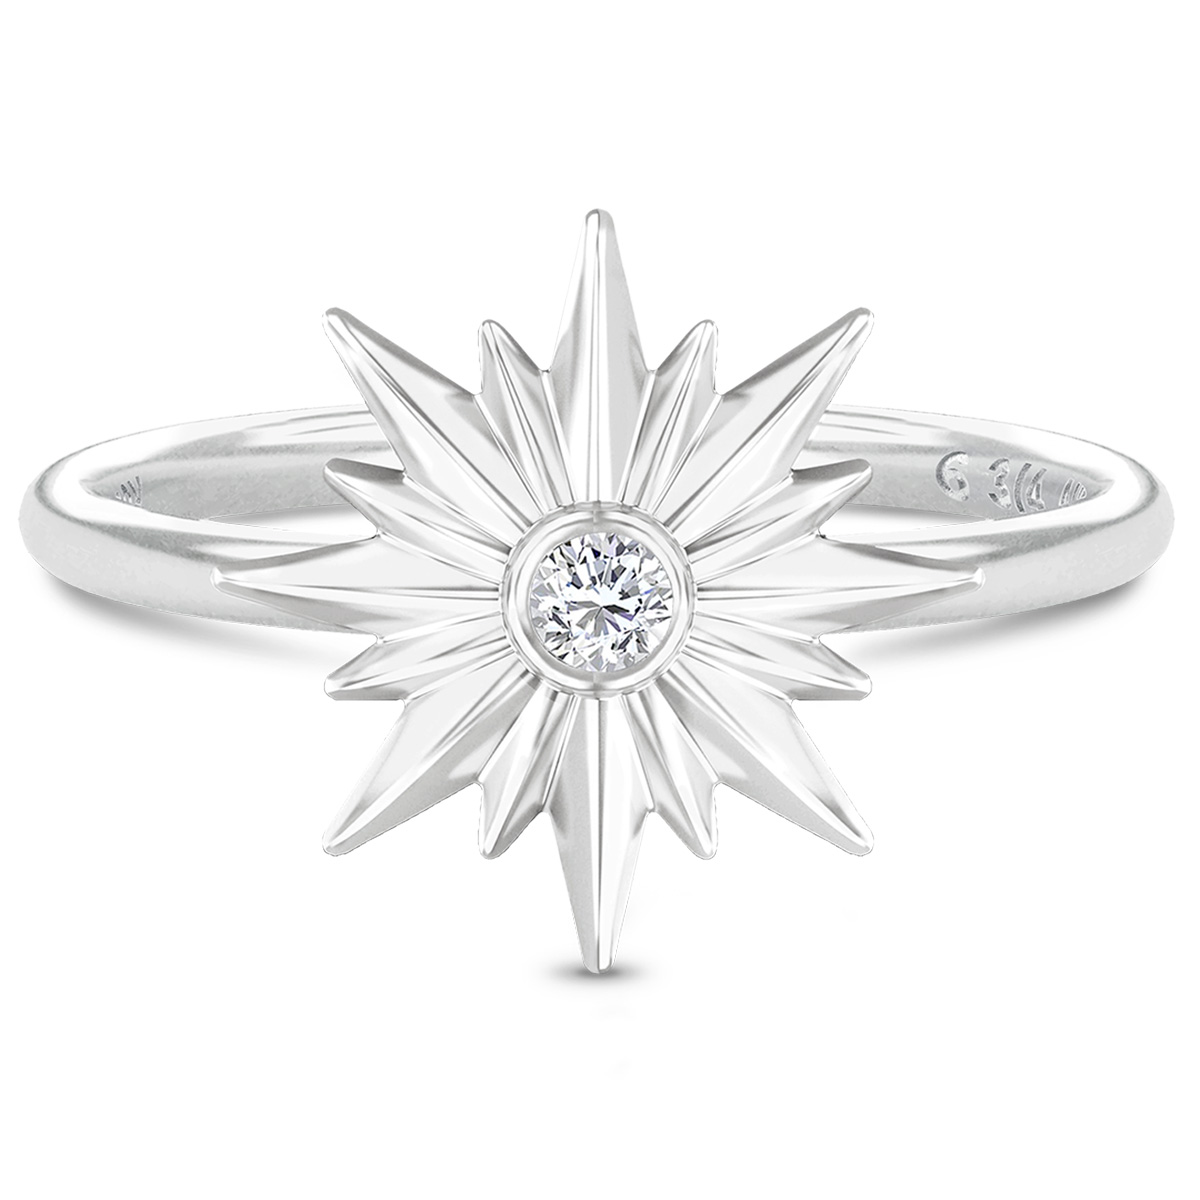 Image of   Spinning Jewelry ring - Aura Energy - Rhodineret sterlingsølv